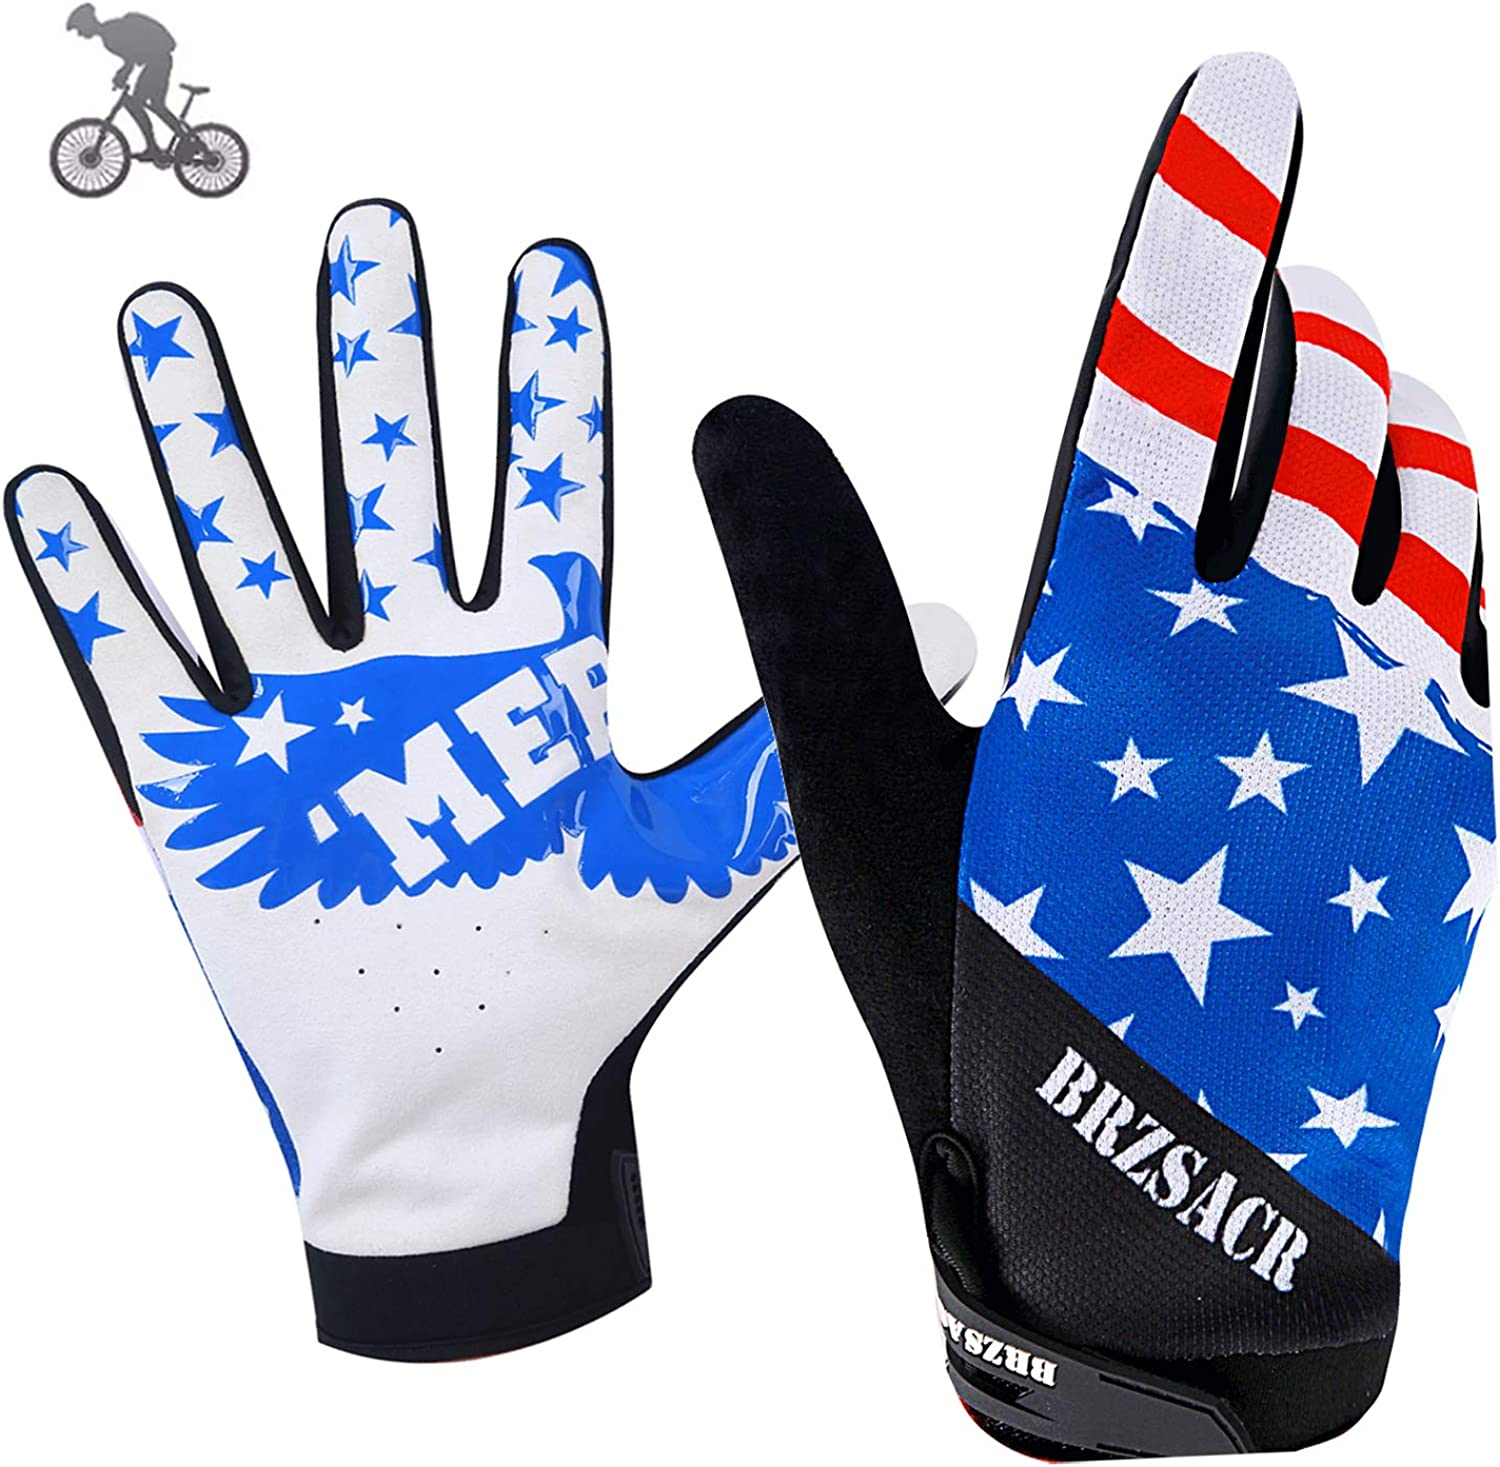 All items free shipping Bike MTB Gloves with for Direct store - Motorcycles Off-Road Mountain Climbin